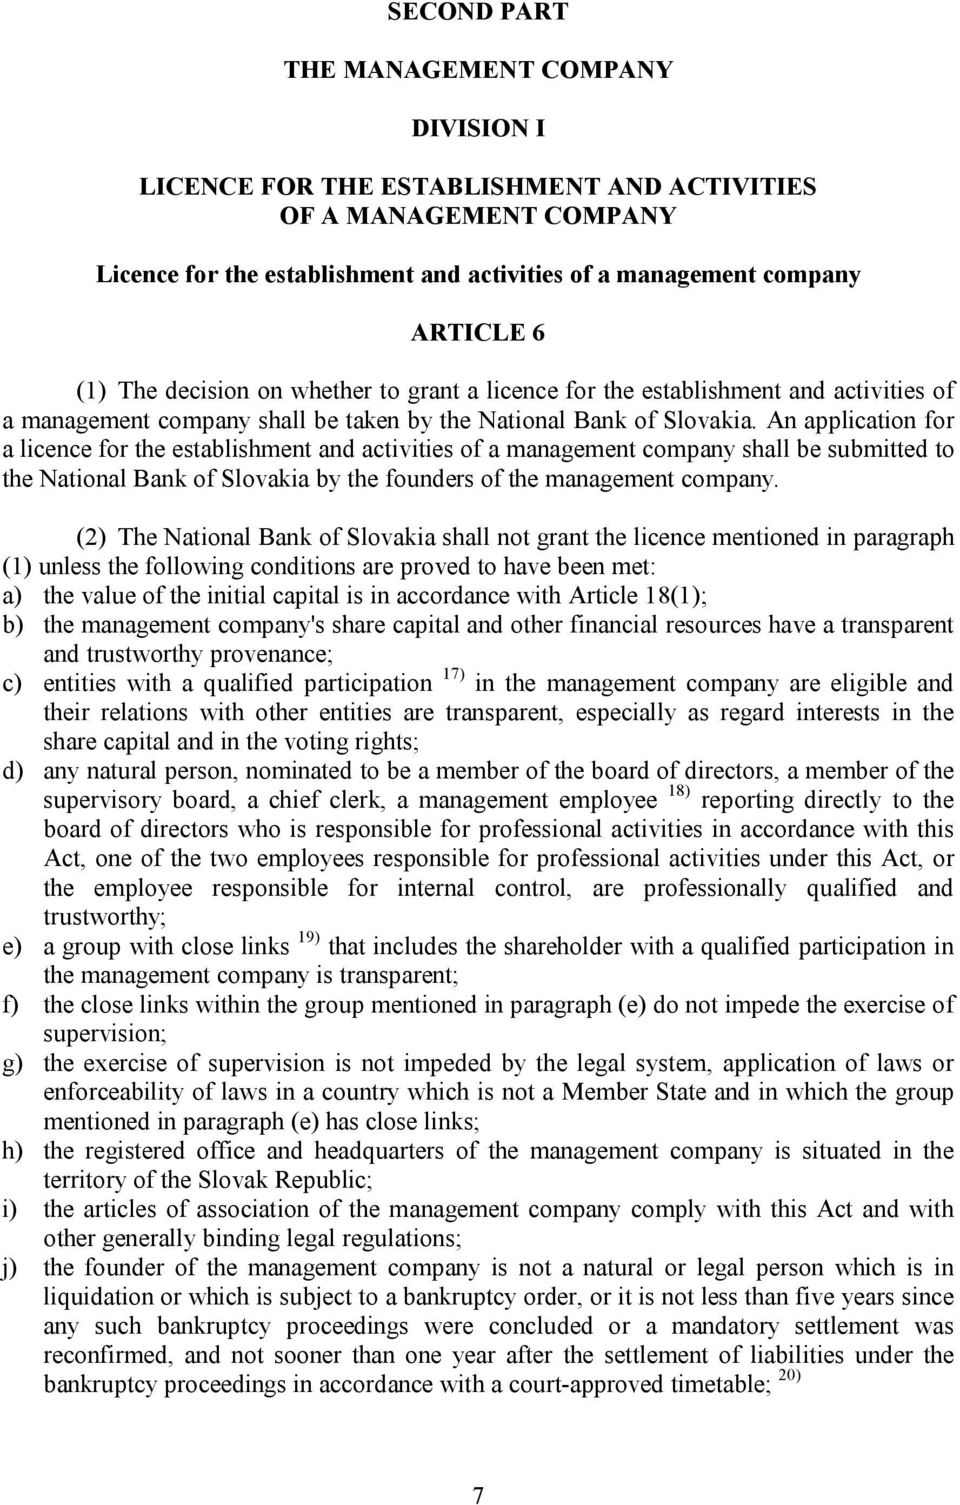 An application for a licence for the establishment and activities of a management company shall be submitted to the National Bank of Slovakia by the founders of the management company.